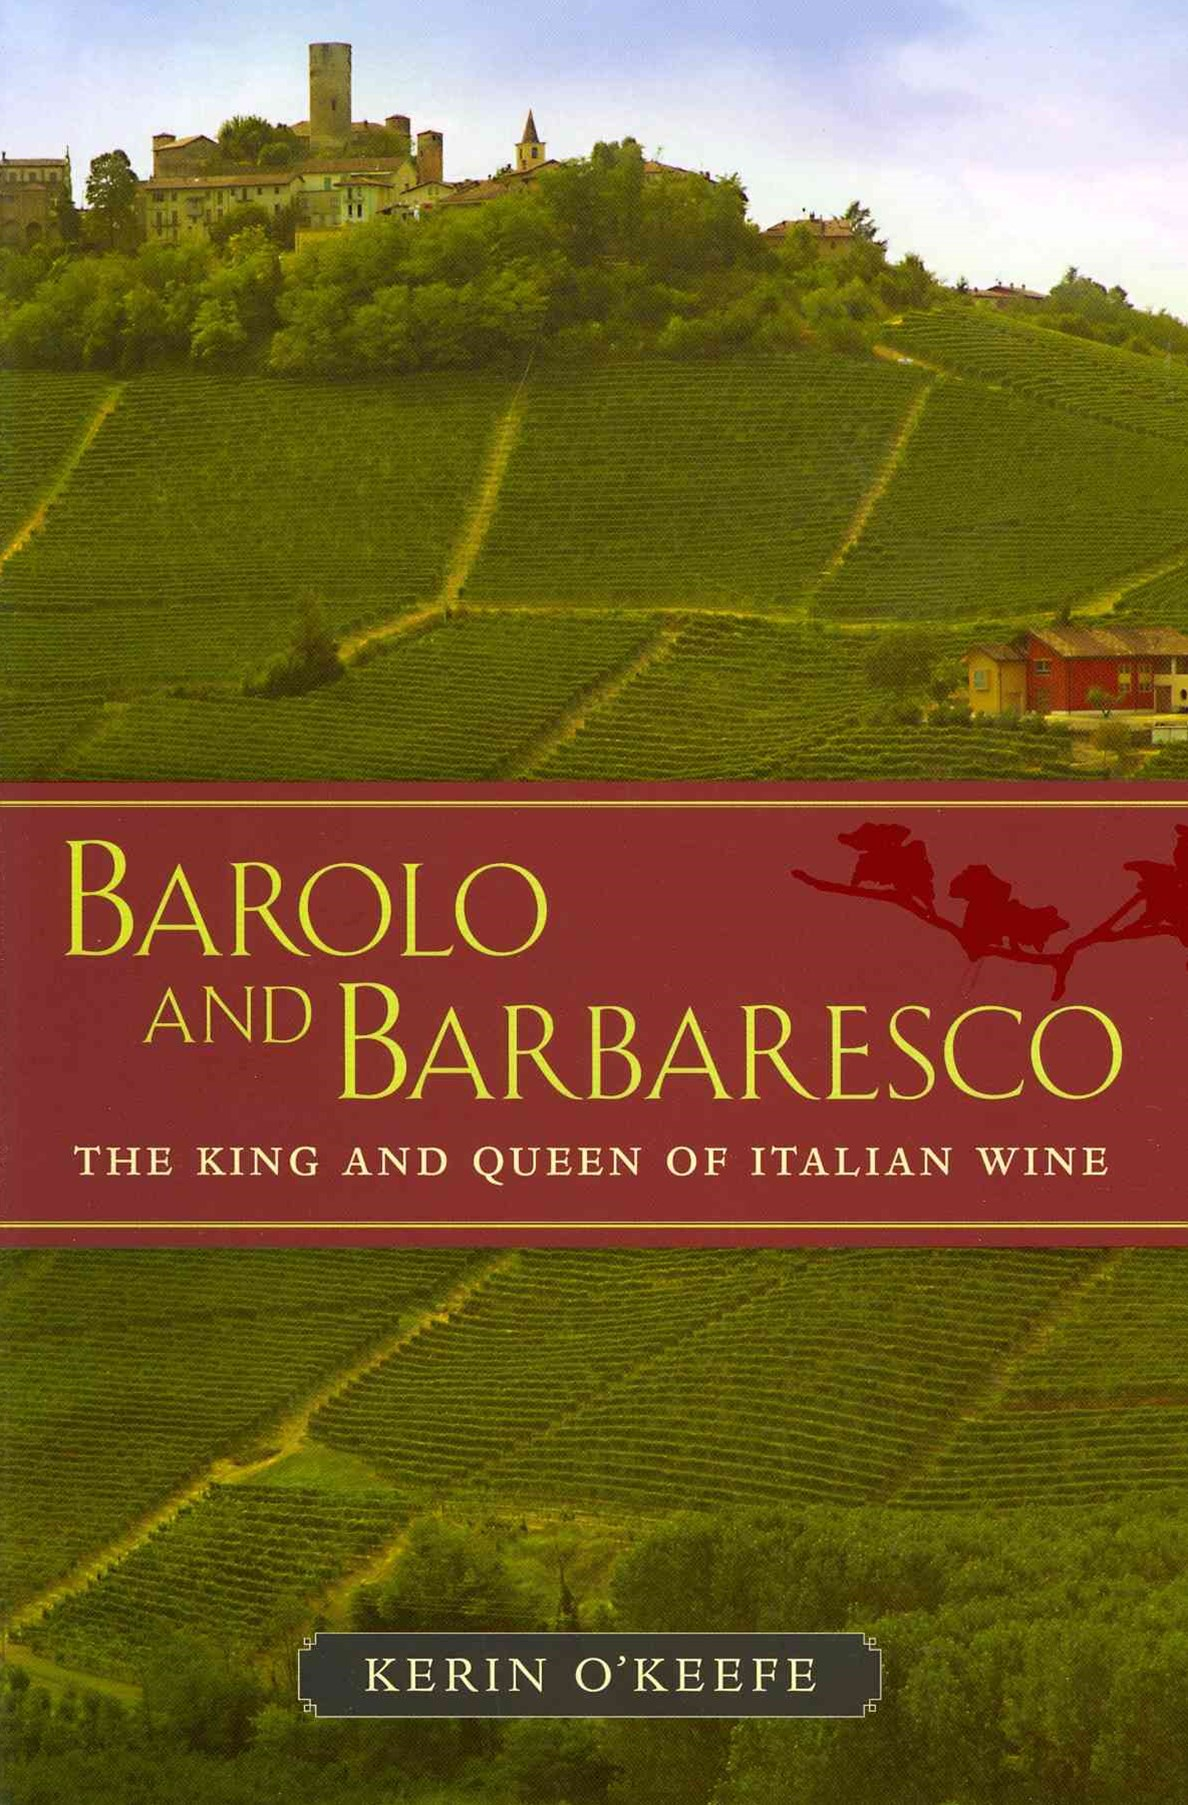 Barolo and Barbaresco